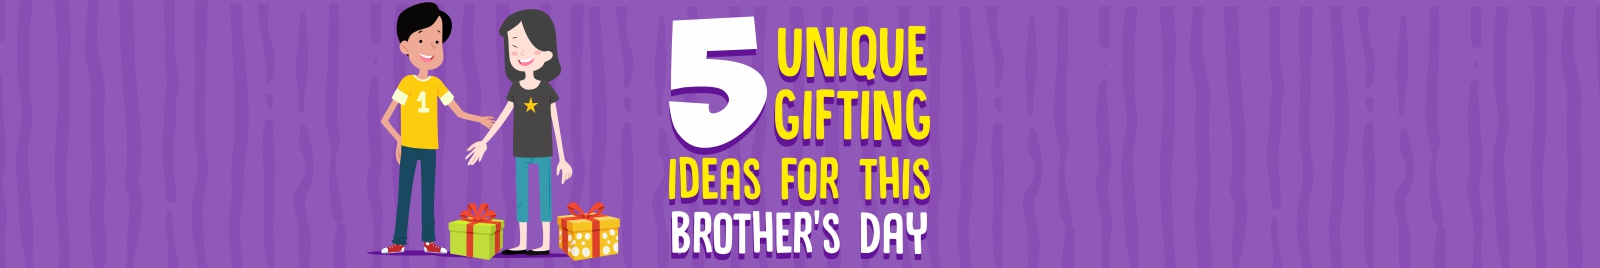 5 unique gifting ideas for this Brother's Day